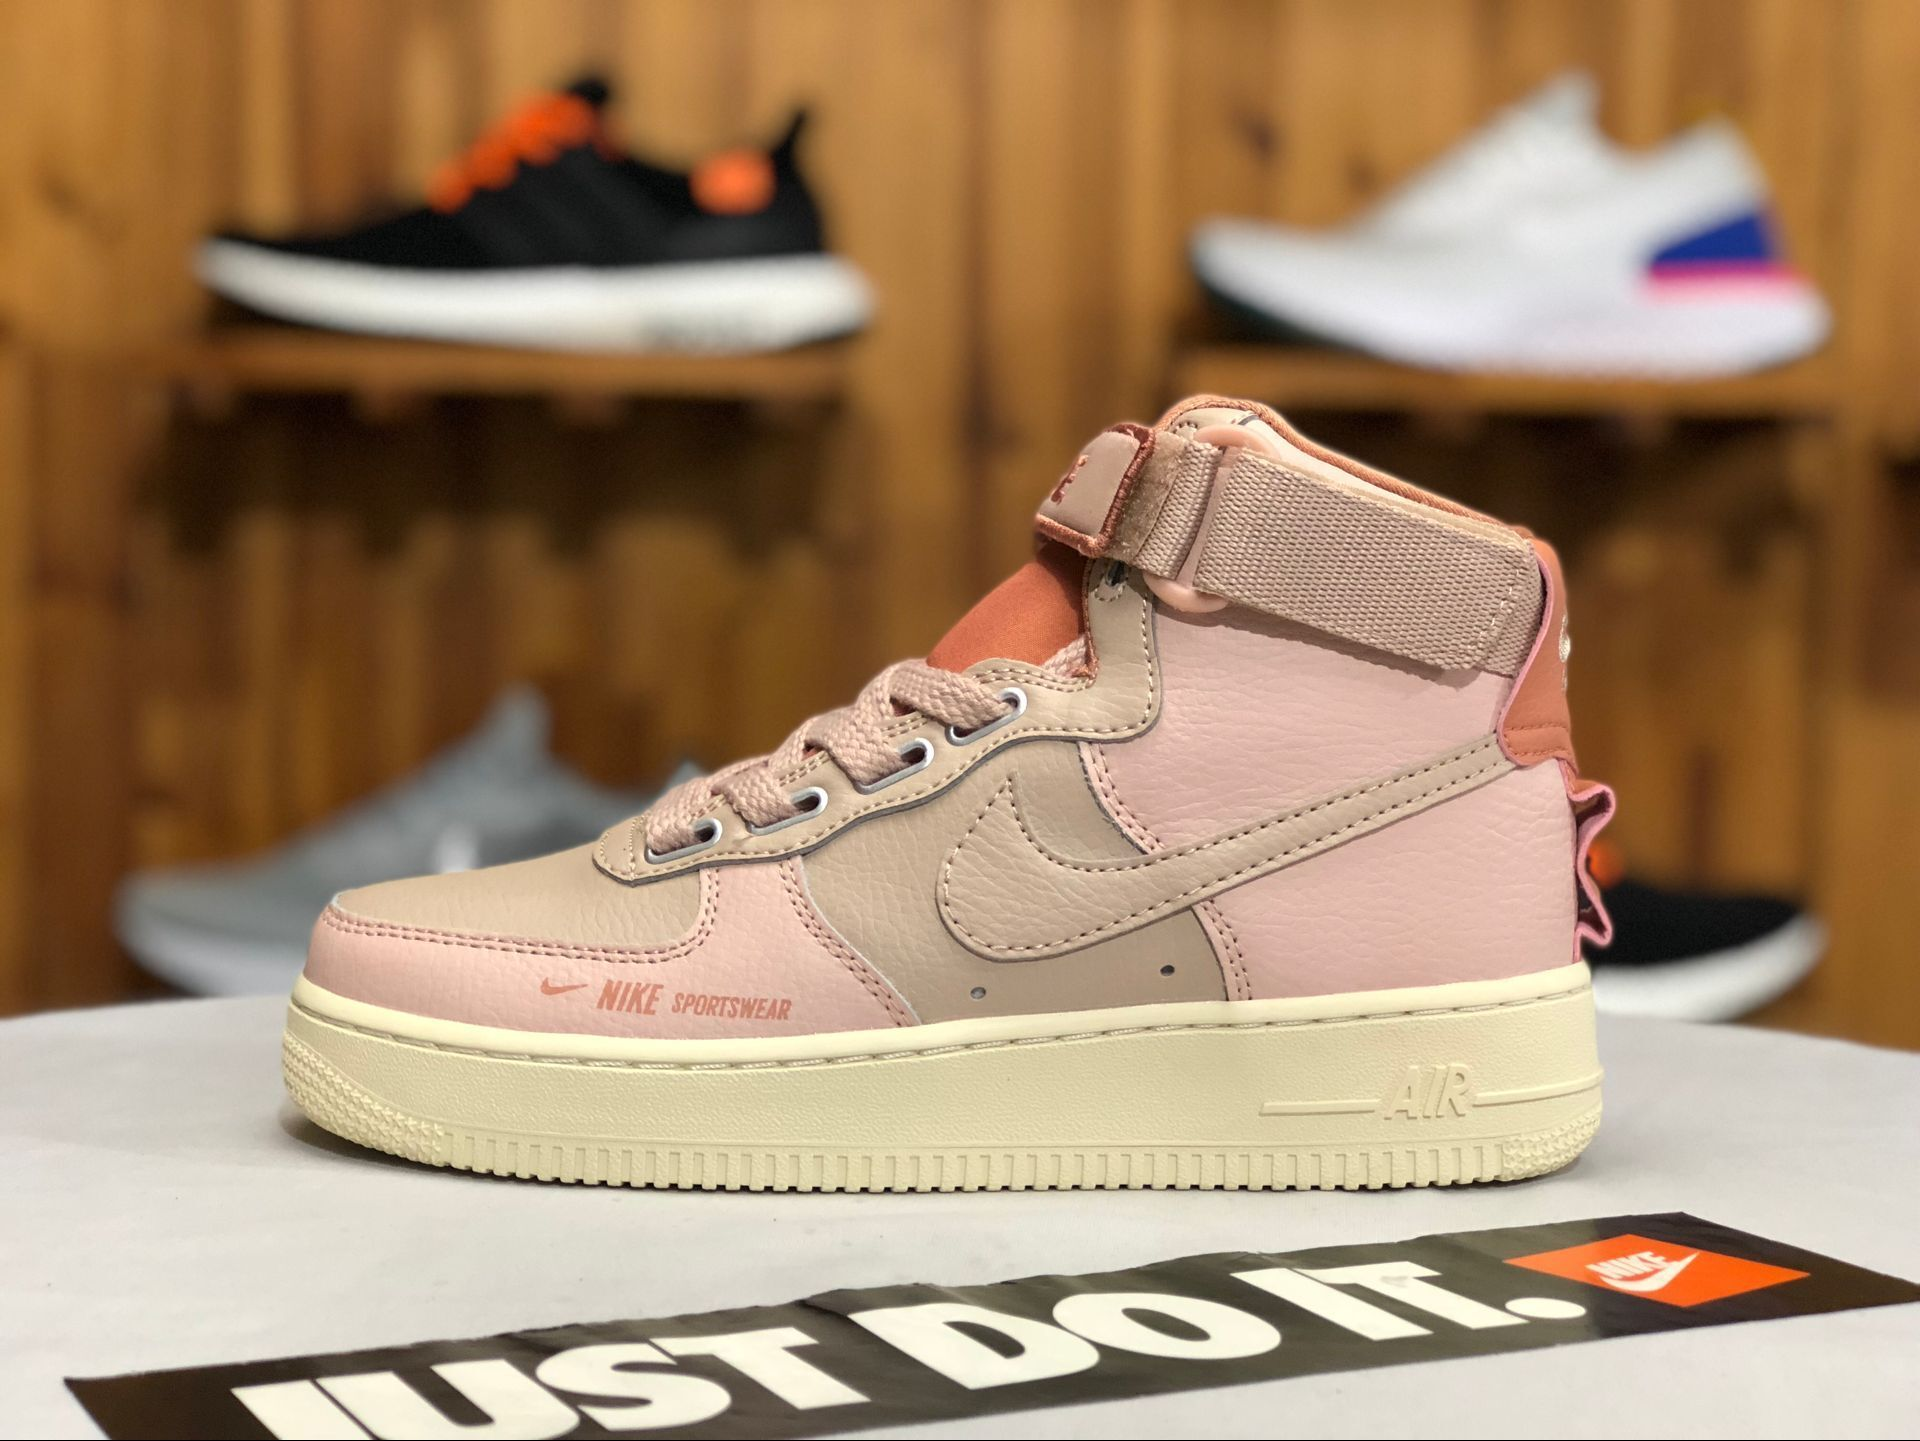 Shop Wmns Nike Air Force 1 High Utility Pink AJ7311200